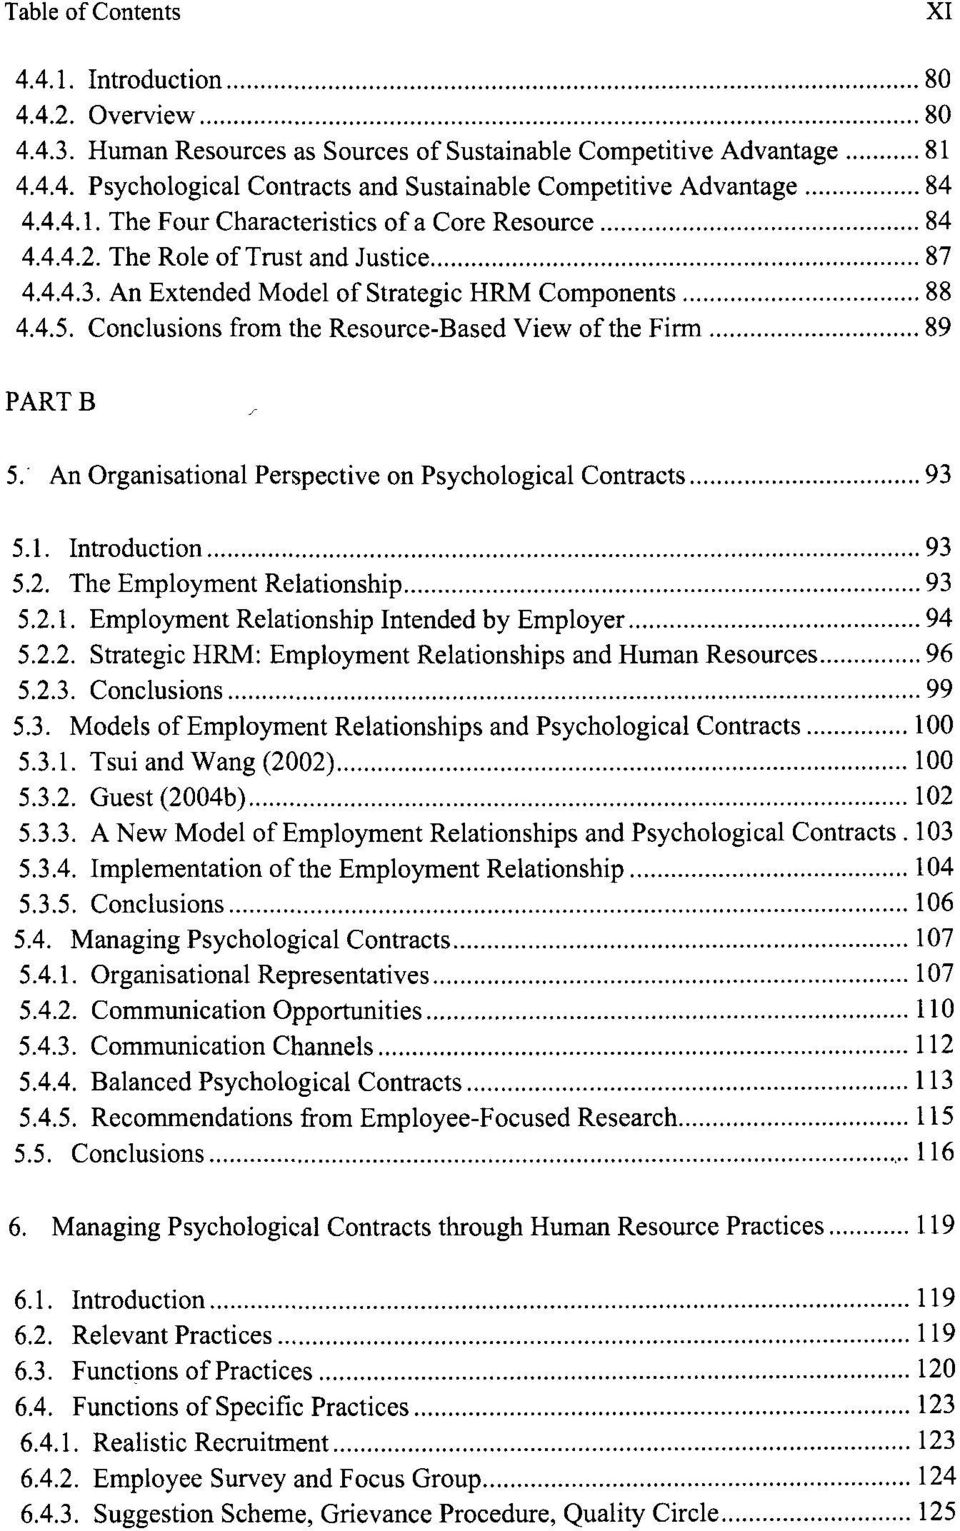 Conclusions from the Resource-Based View of the Firm 89 PART B 5. An Organisational Perspective on Psychological Contracts 93 5.1. Introduction 93 5.2. The Employment Relationship 93 5.2.1. Employment Relationship Intended by Employer 94 5.